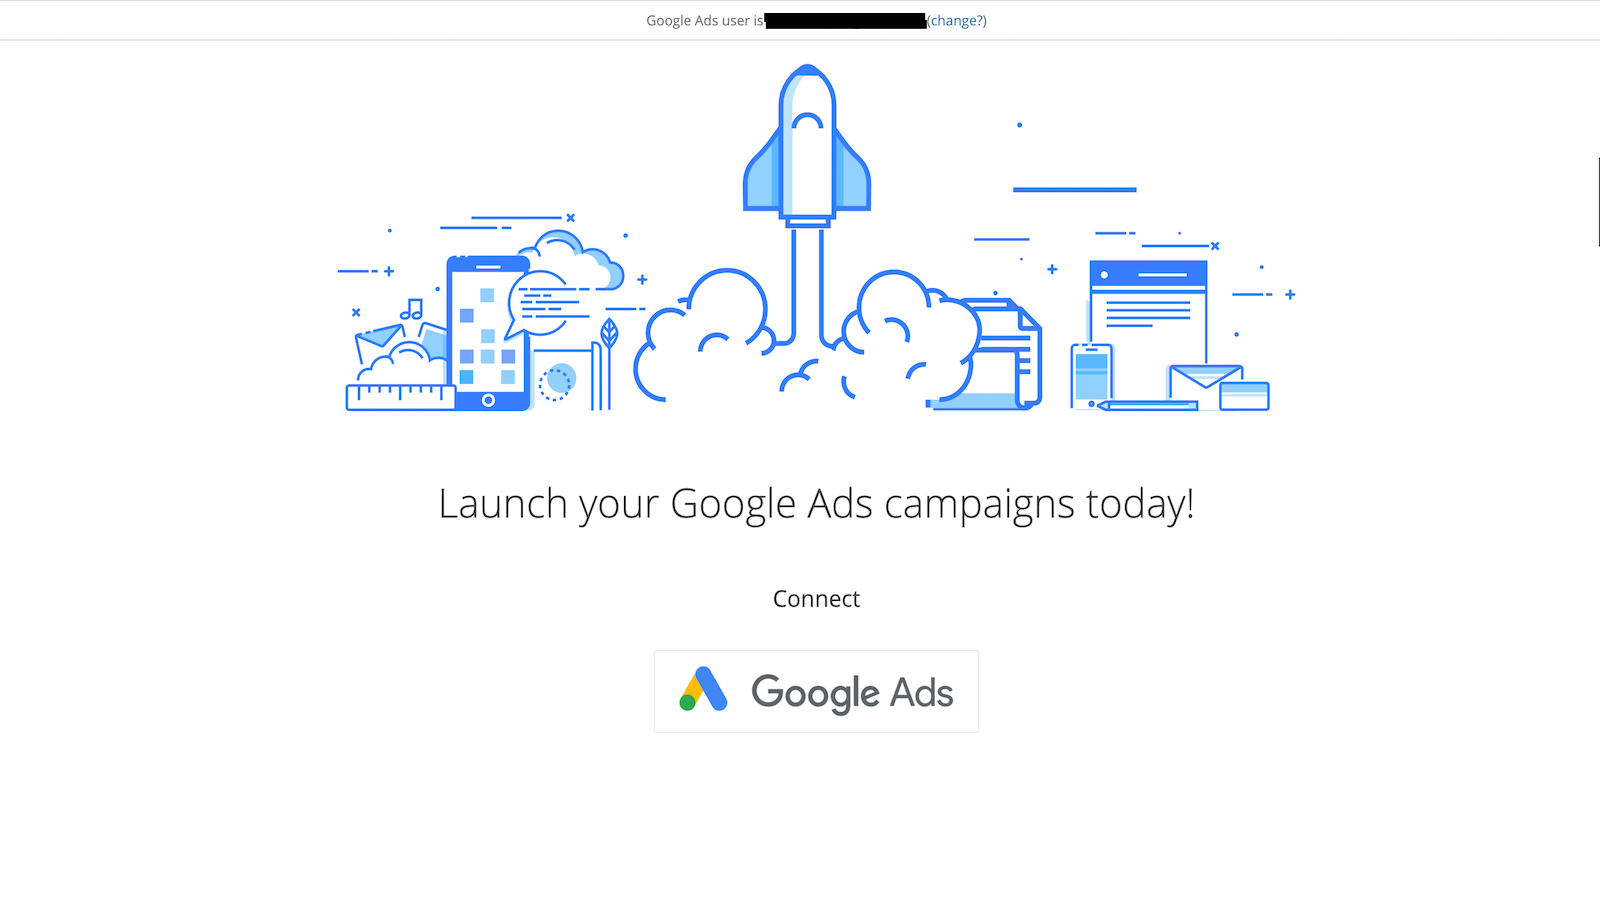 Connect Google Ads